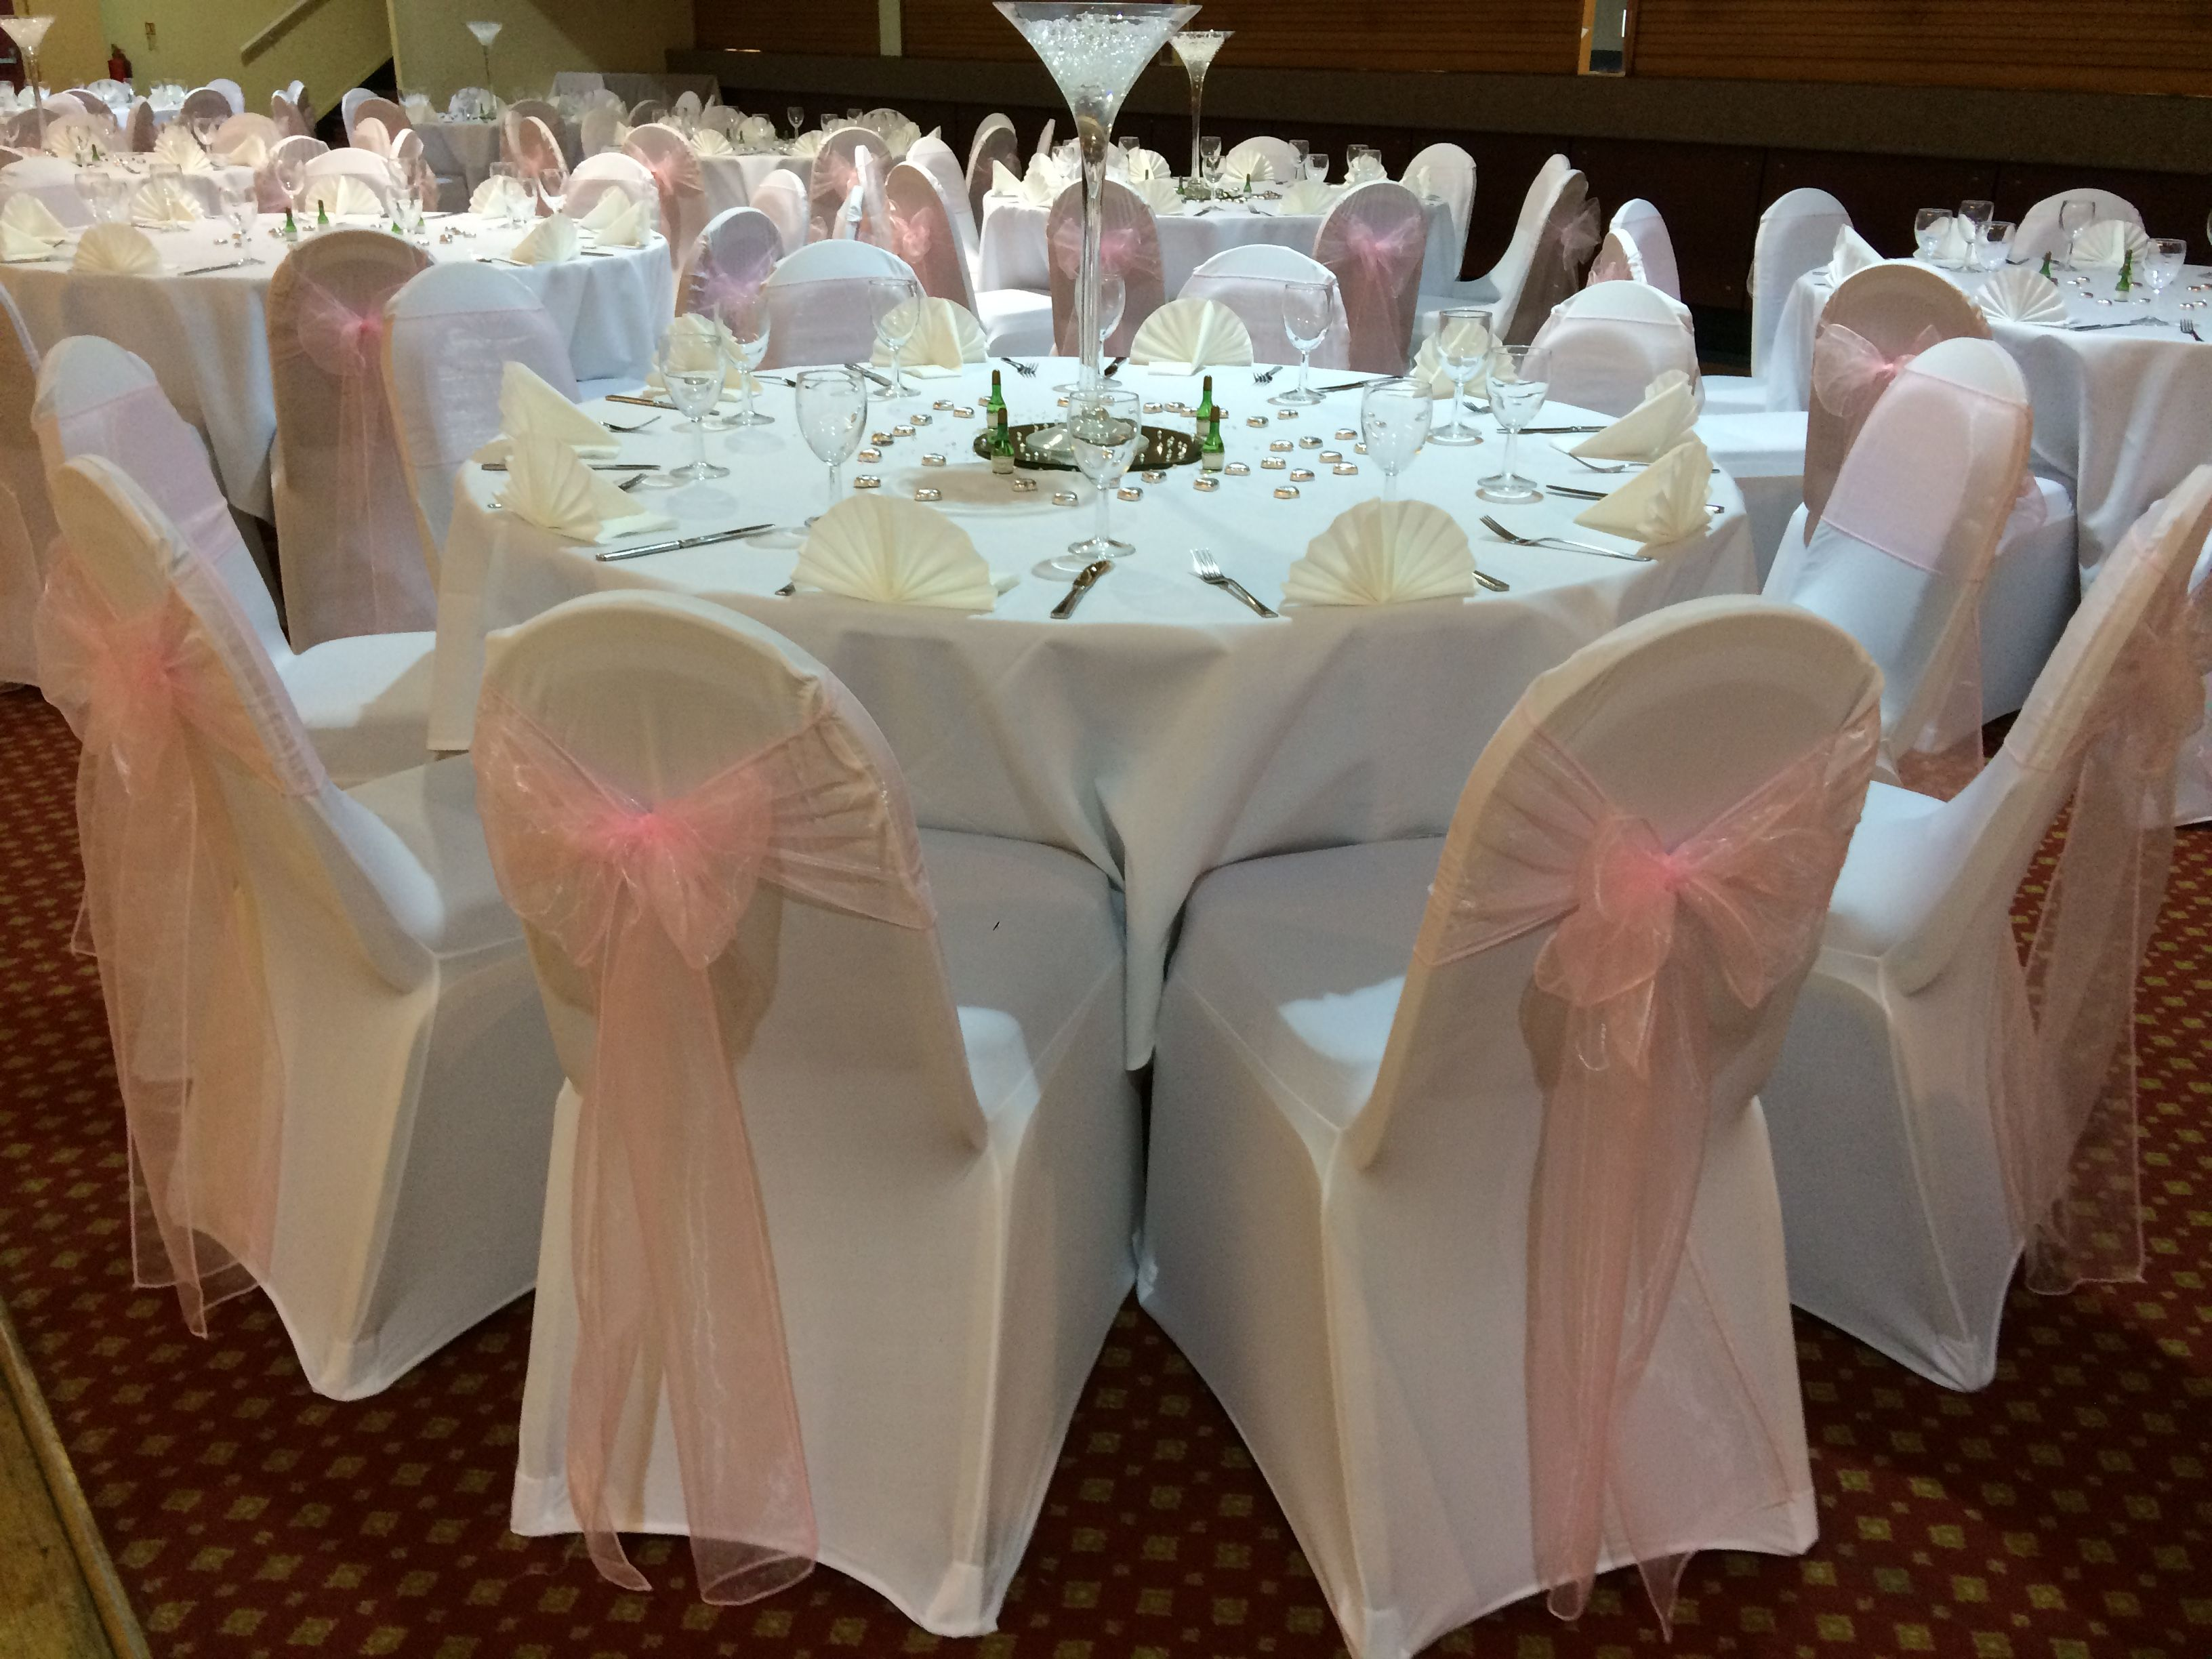 White Chair Covers With Pale Pink Organza Sashes At A Wedding At The Aberavon Beach Hotel Venue Dressed By Affinity Wedding Chair Sashes Wedding Hire Wedding